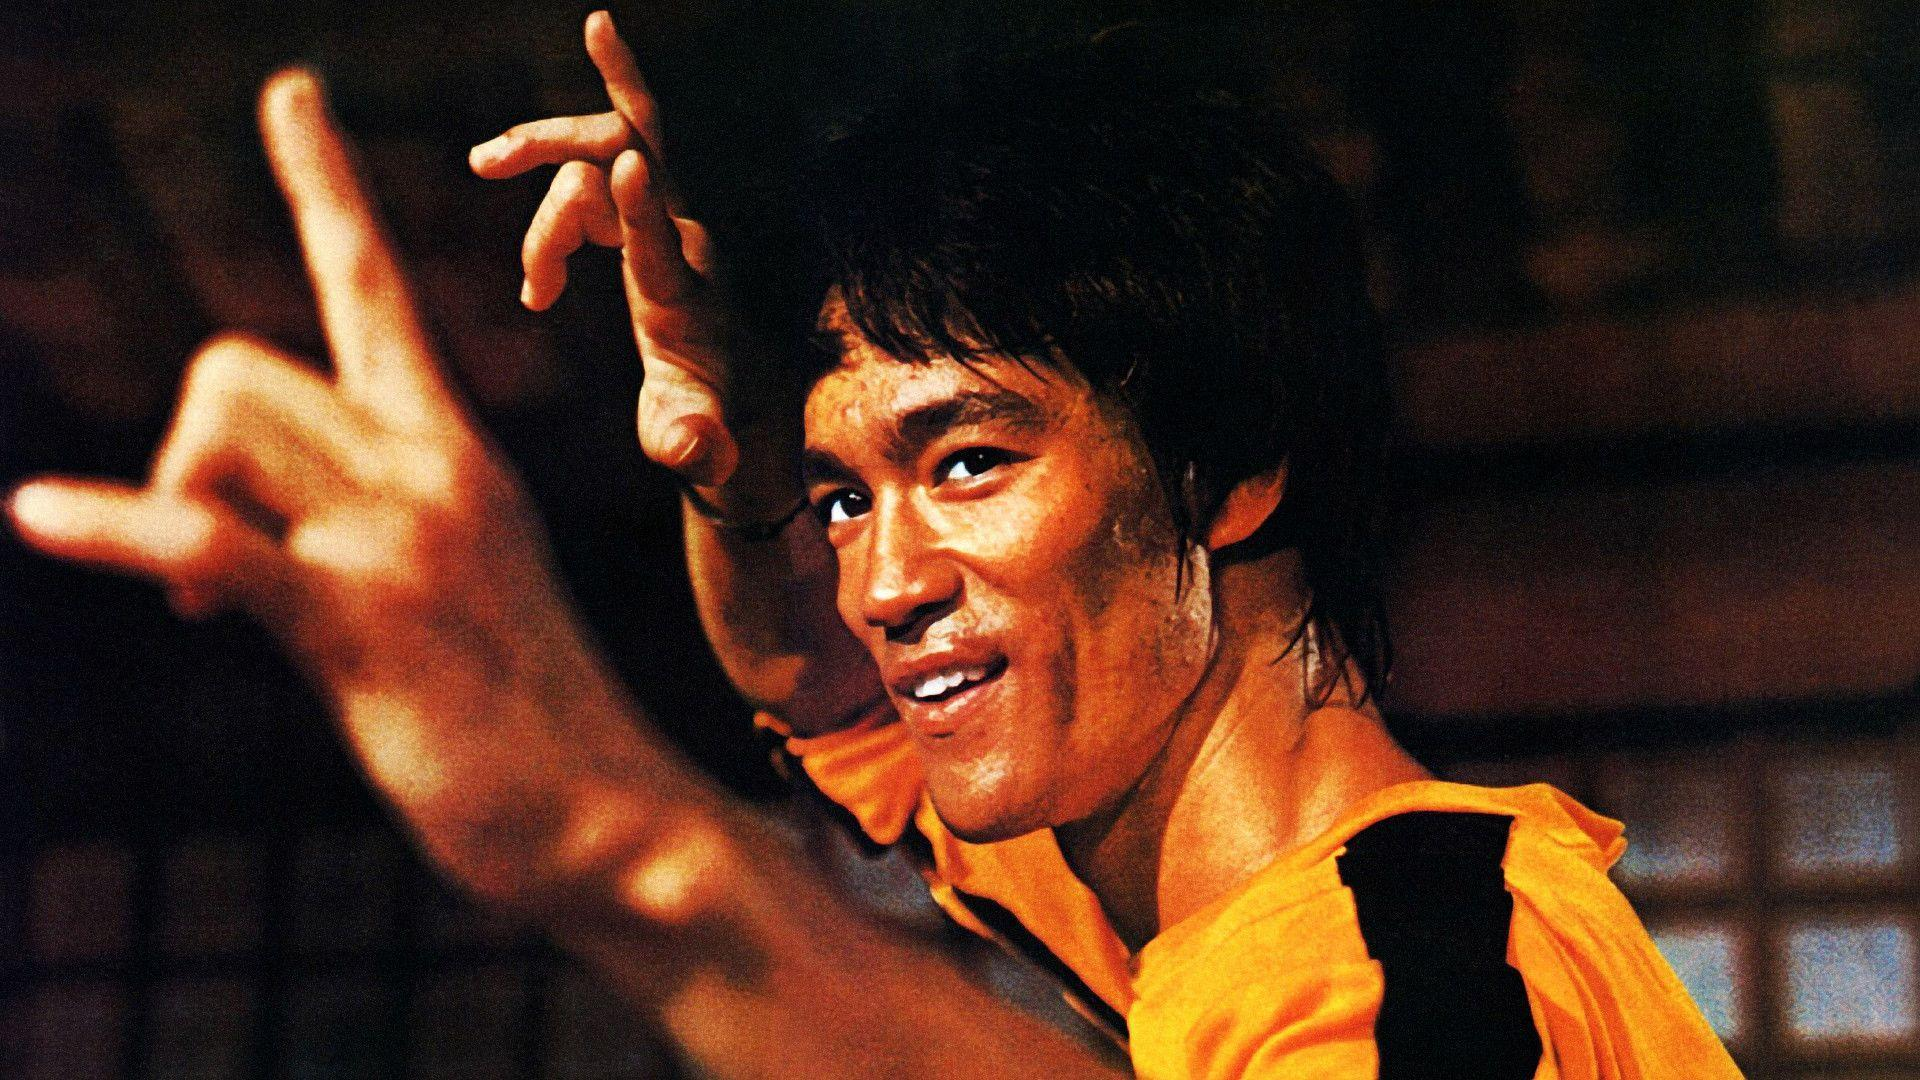 GAME OF DEATH martial arts bruce lee f wallpaper | 1920x1080 ...